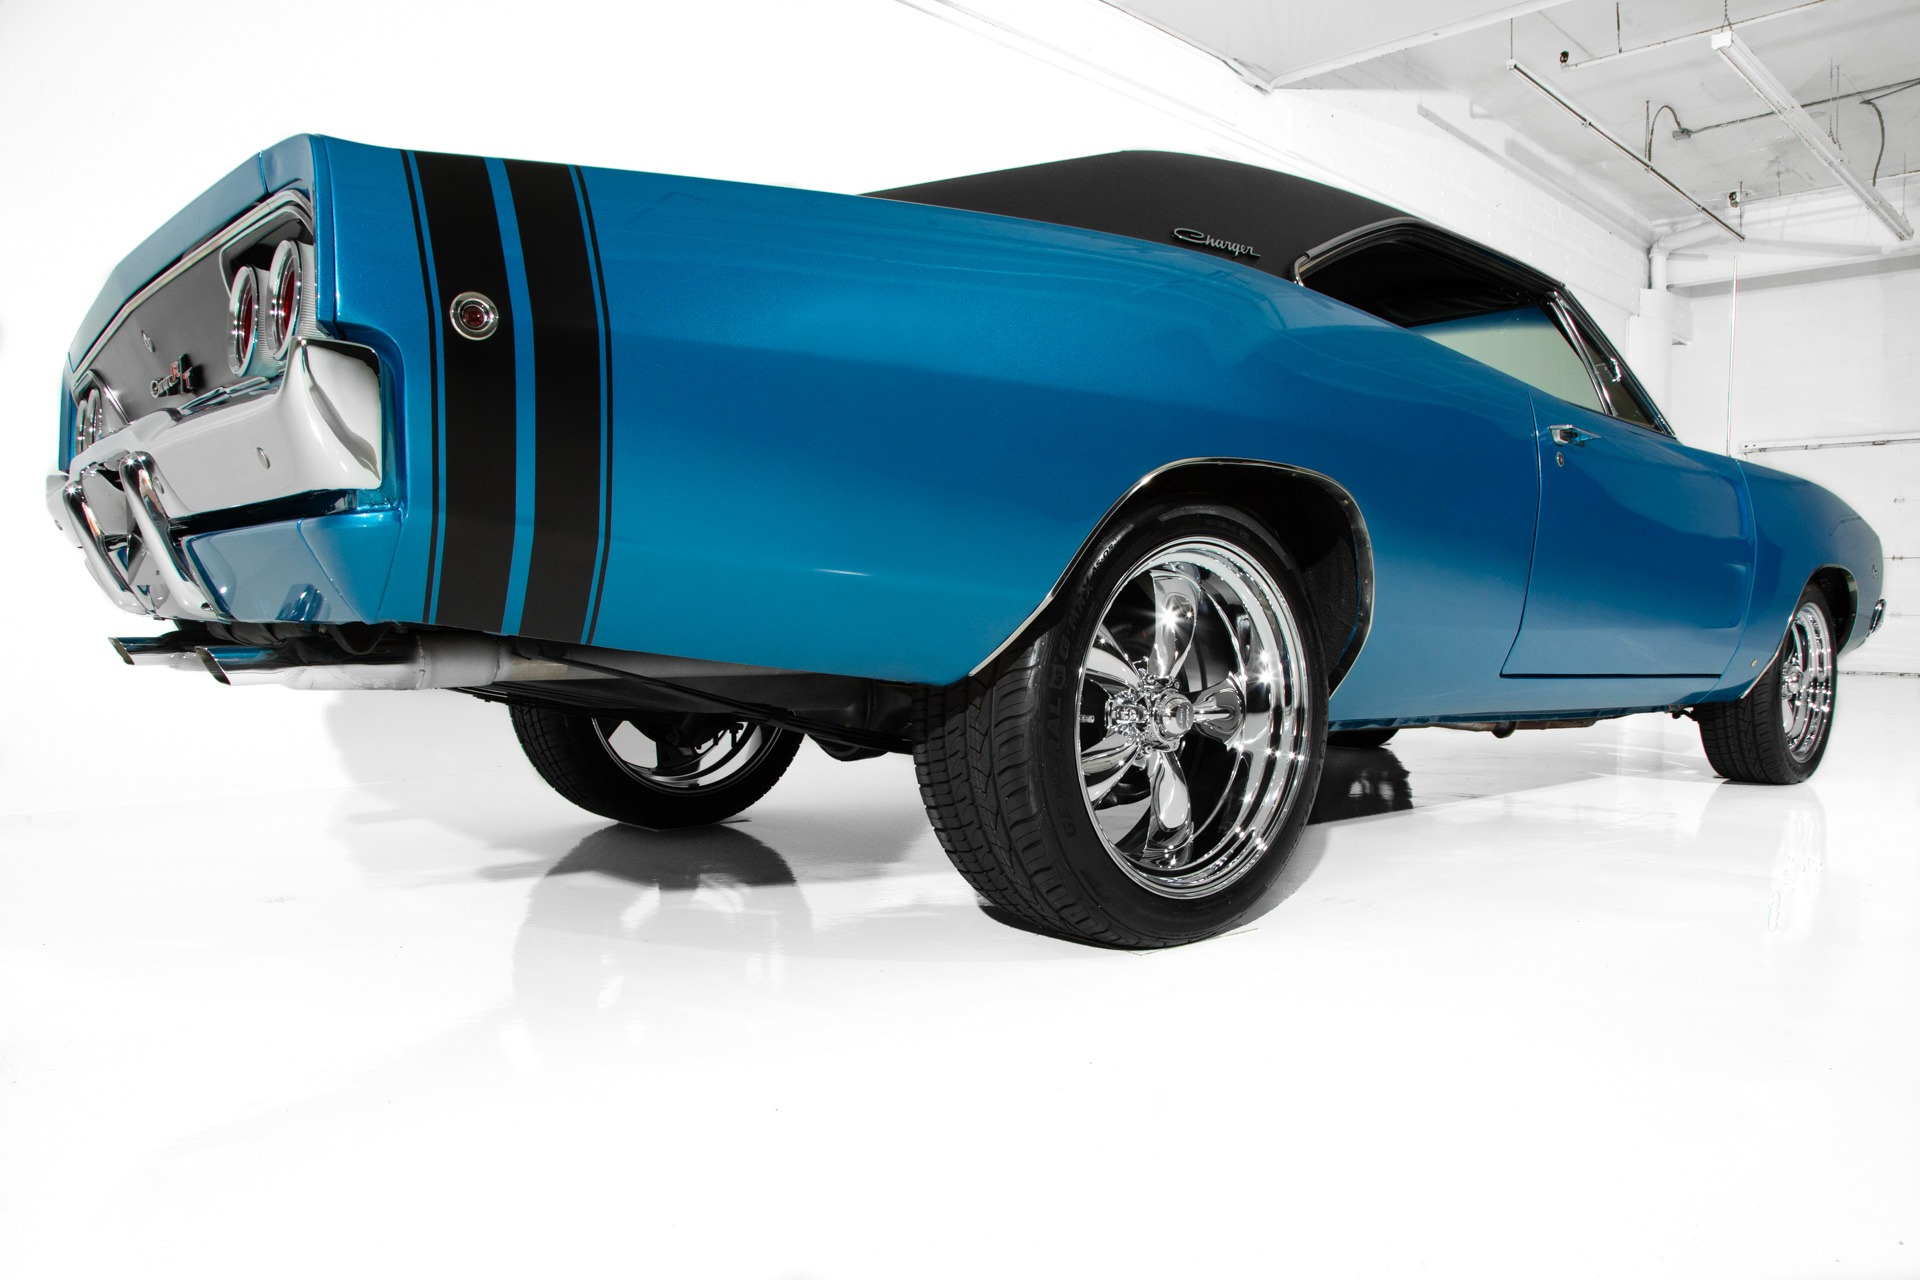 For Sale Used 1968 Dodge Charger B5 Blue  440/450, Chrome | American Dream Machines Des Moines IA 50309